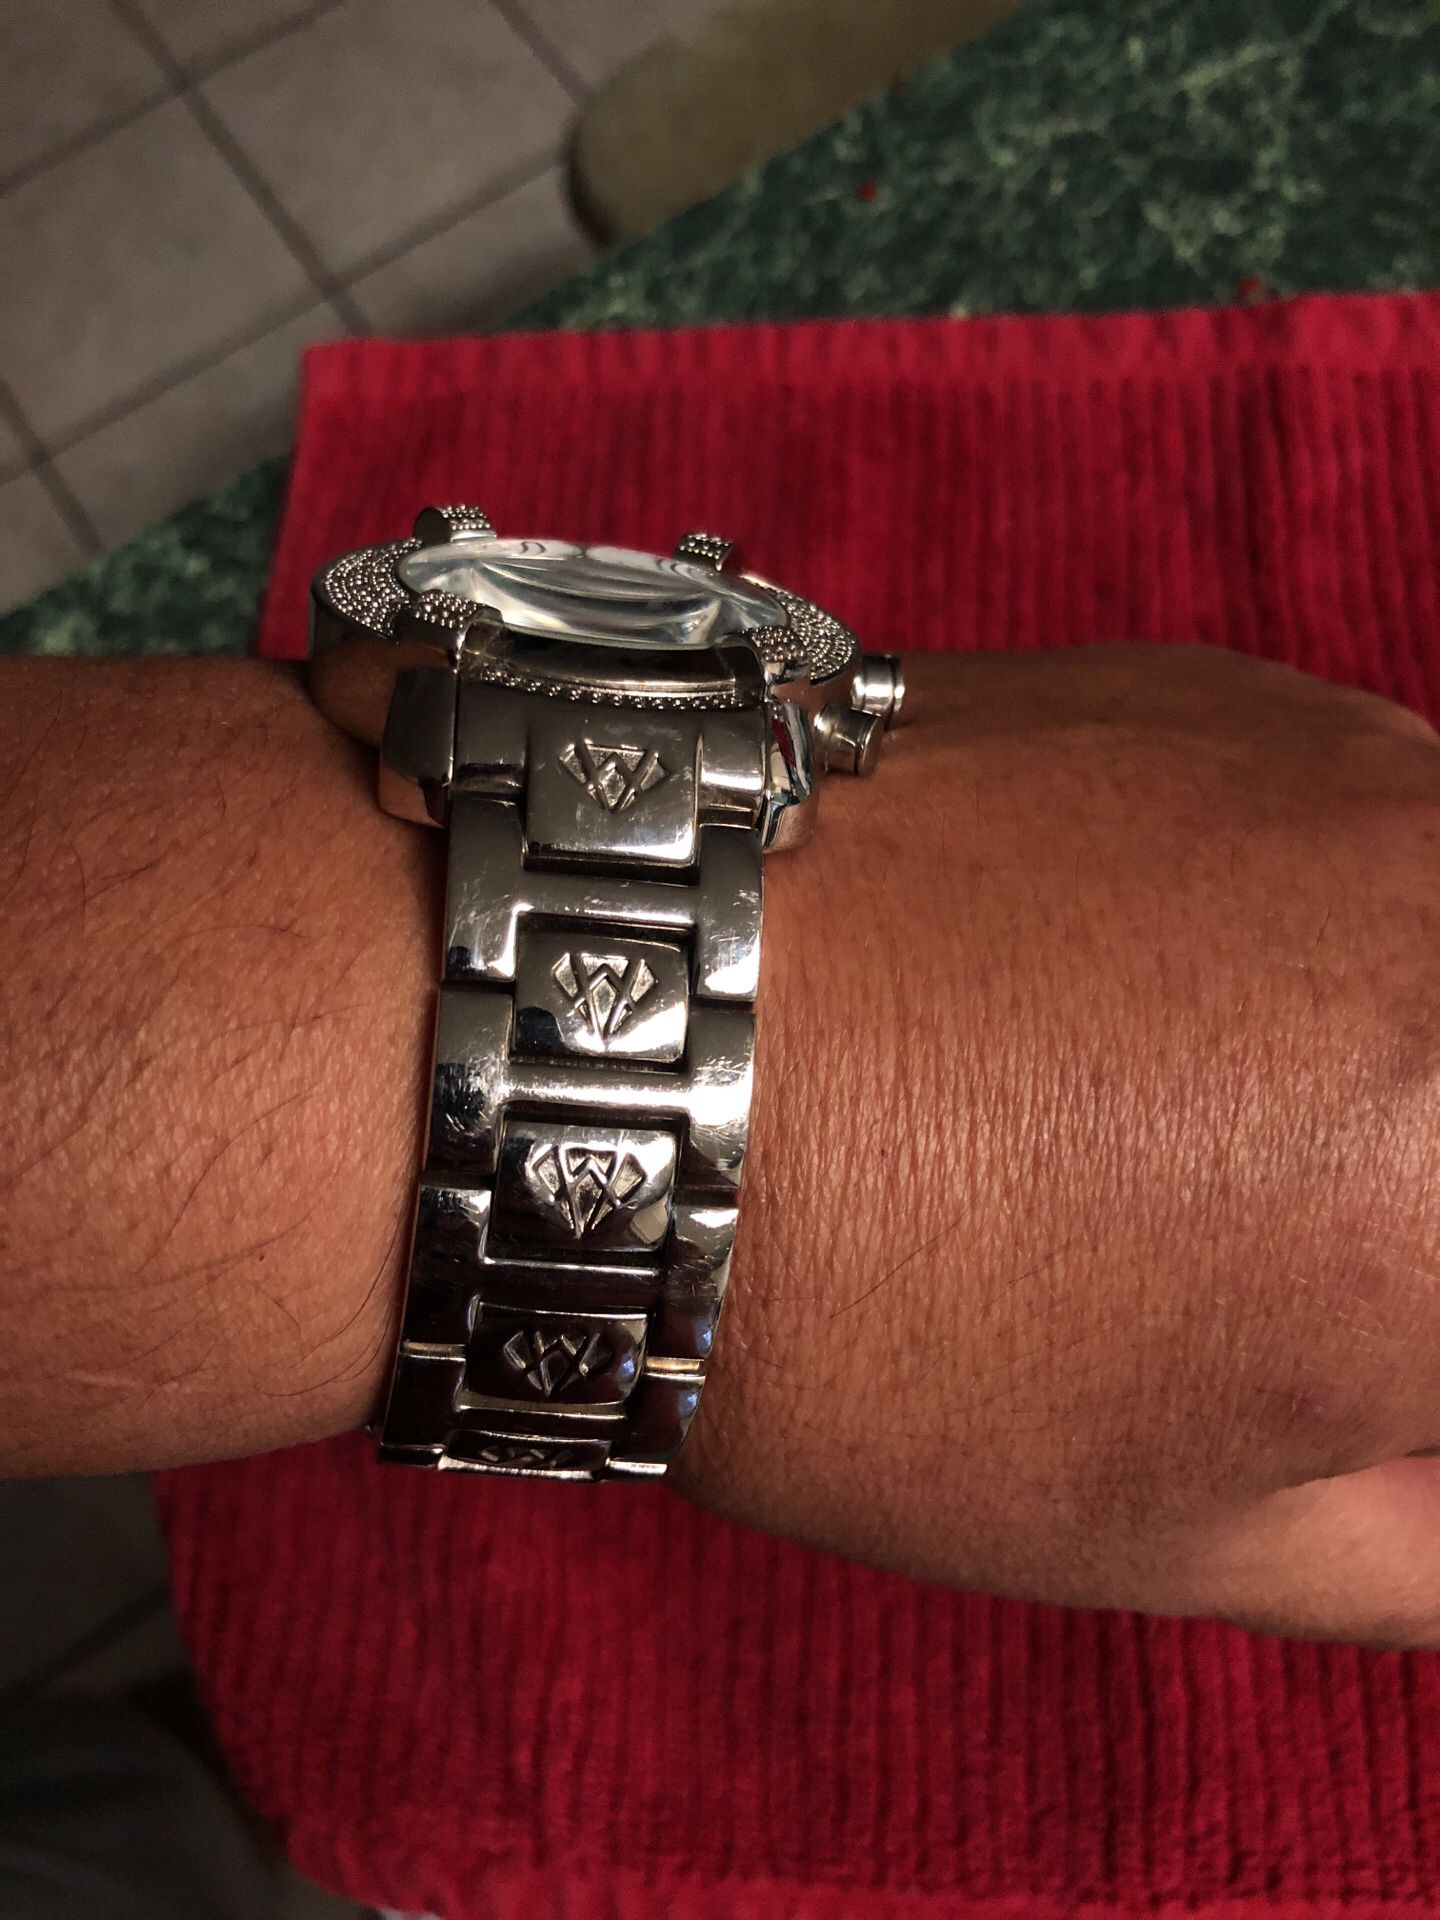 Aqua Master watch in very good condition